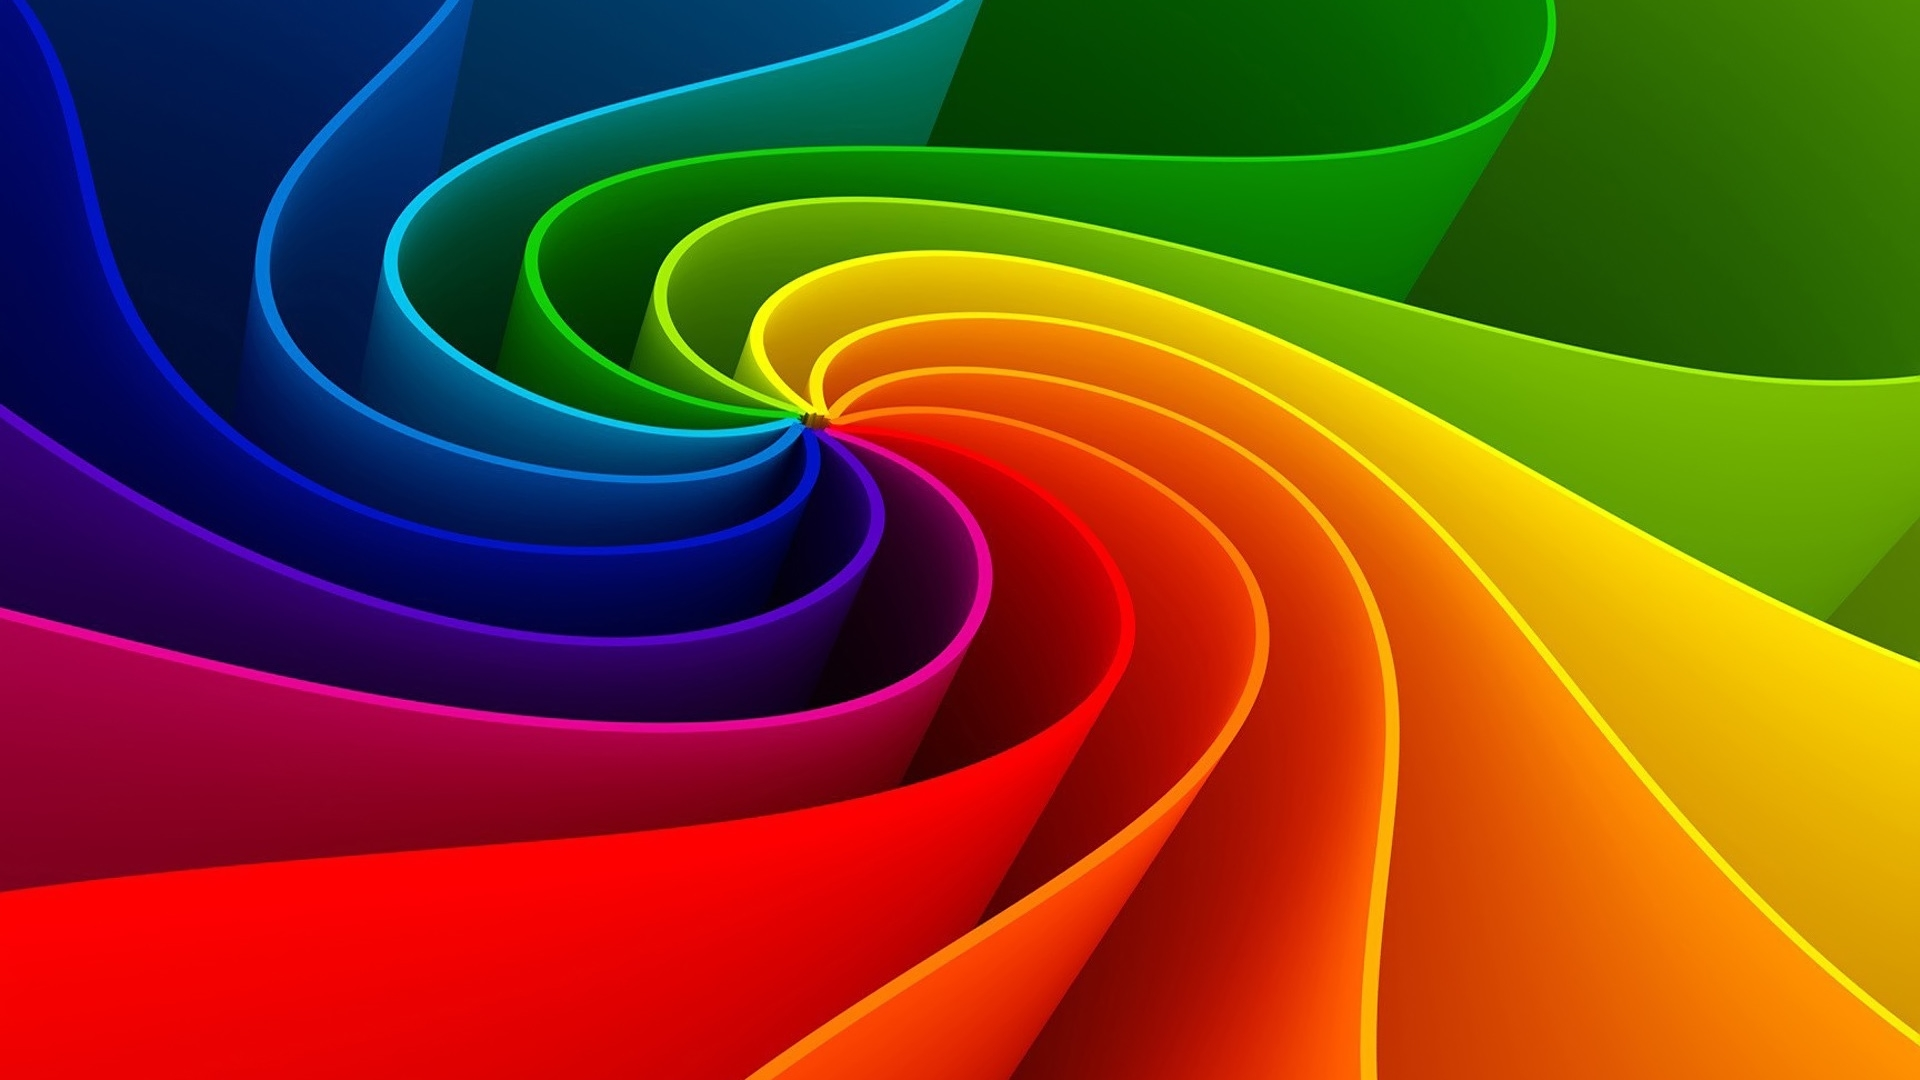 http://2.bp.blogspot.com/-LjKkyjyyuUo/UE9x9c2omnI/AAAAAAAAJaY/AN54zoqPKYY/s0/amazing-abstract-rainbow-1920x1080-wallpaper.jpg